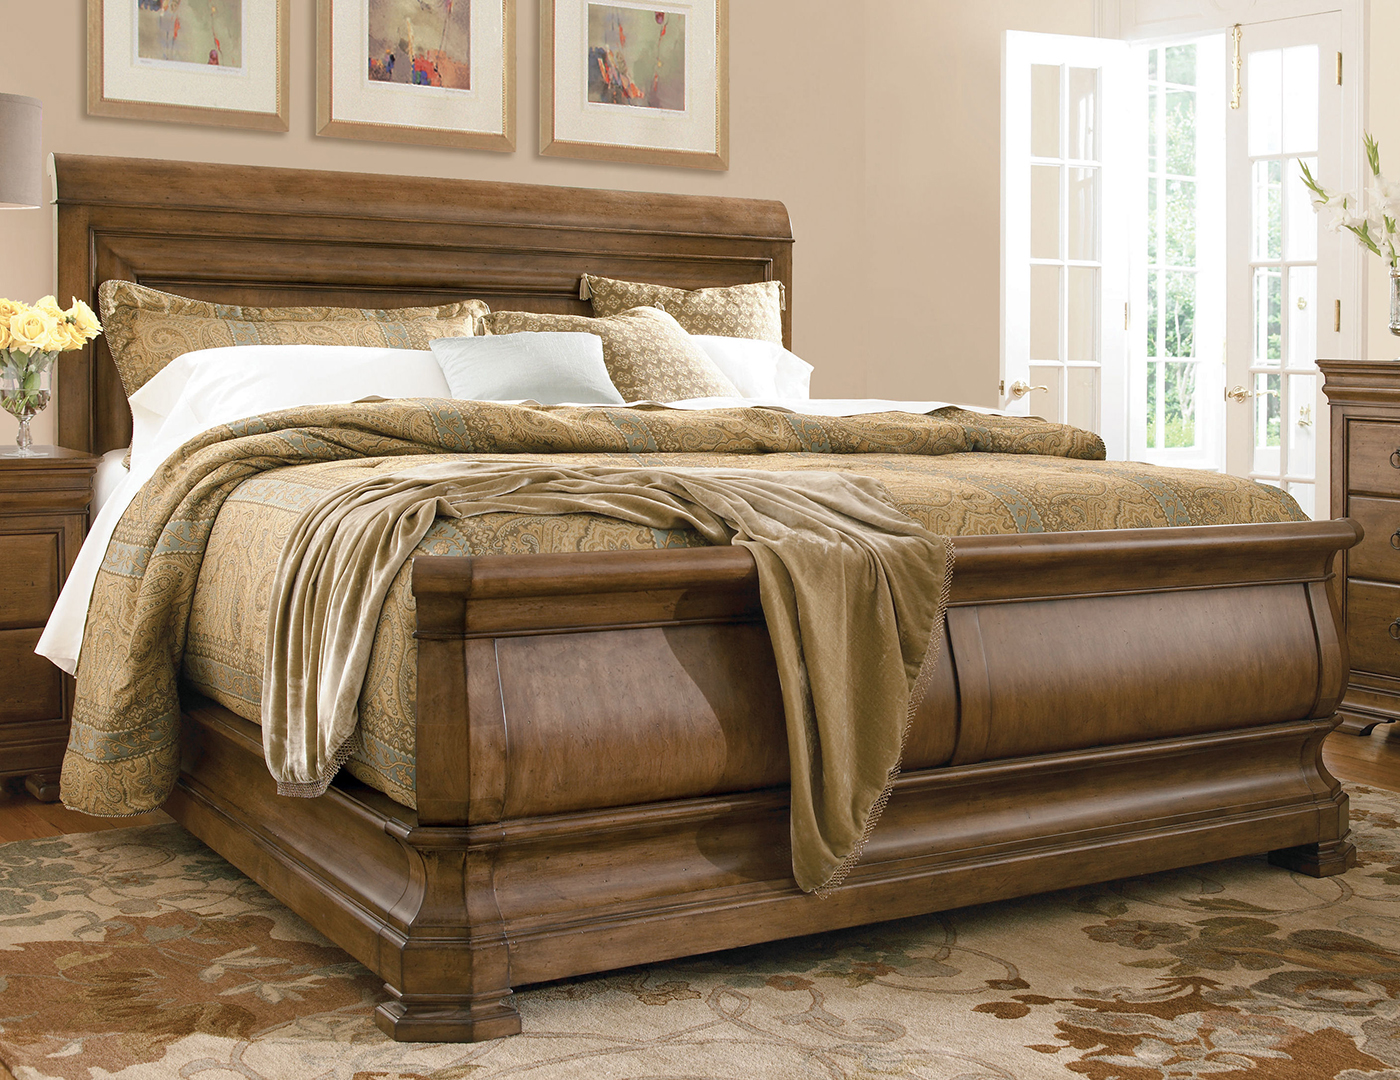 New Lou King Sleigh Bed | Steinhafels